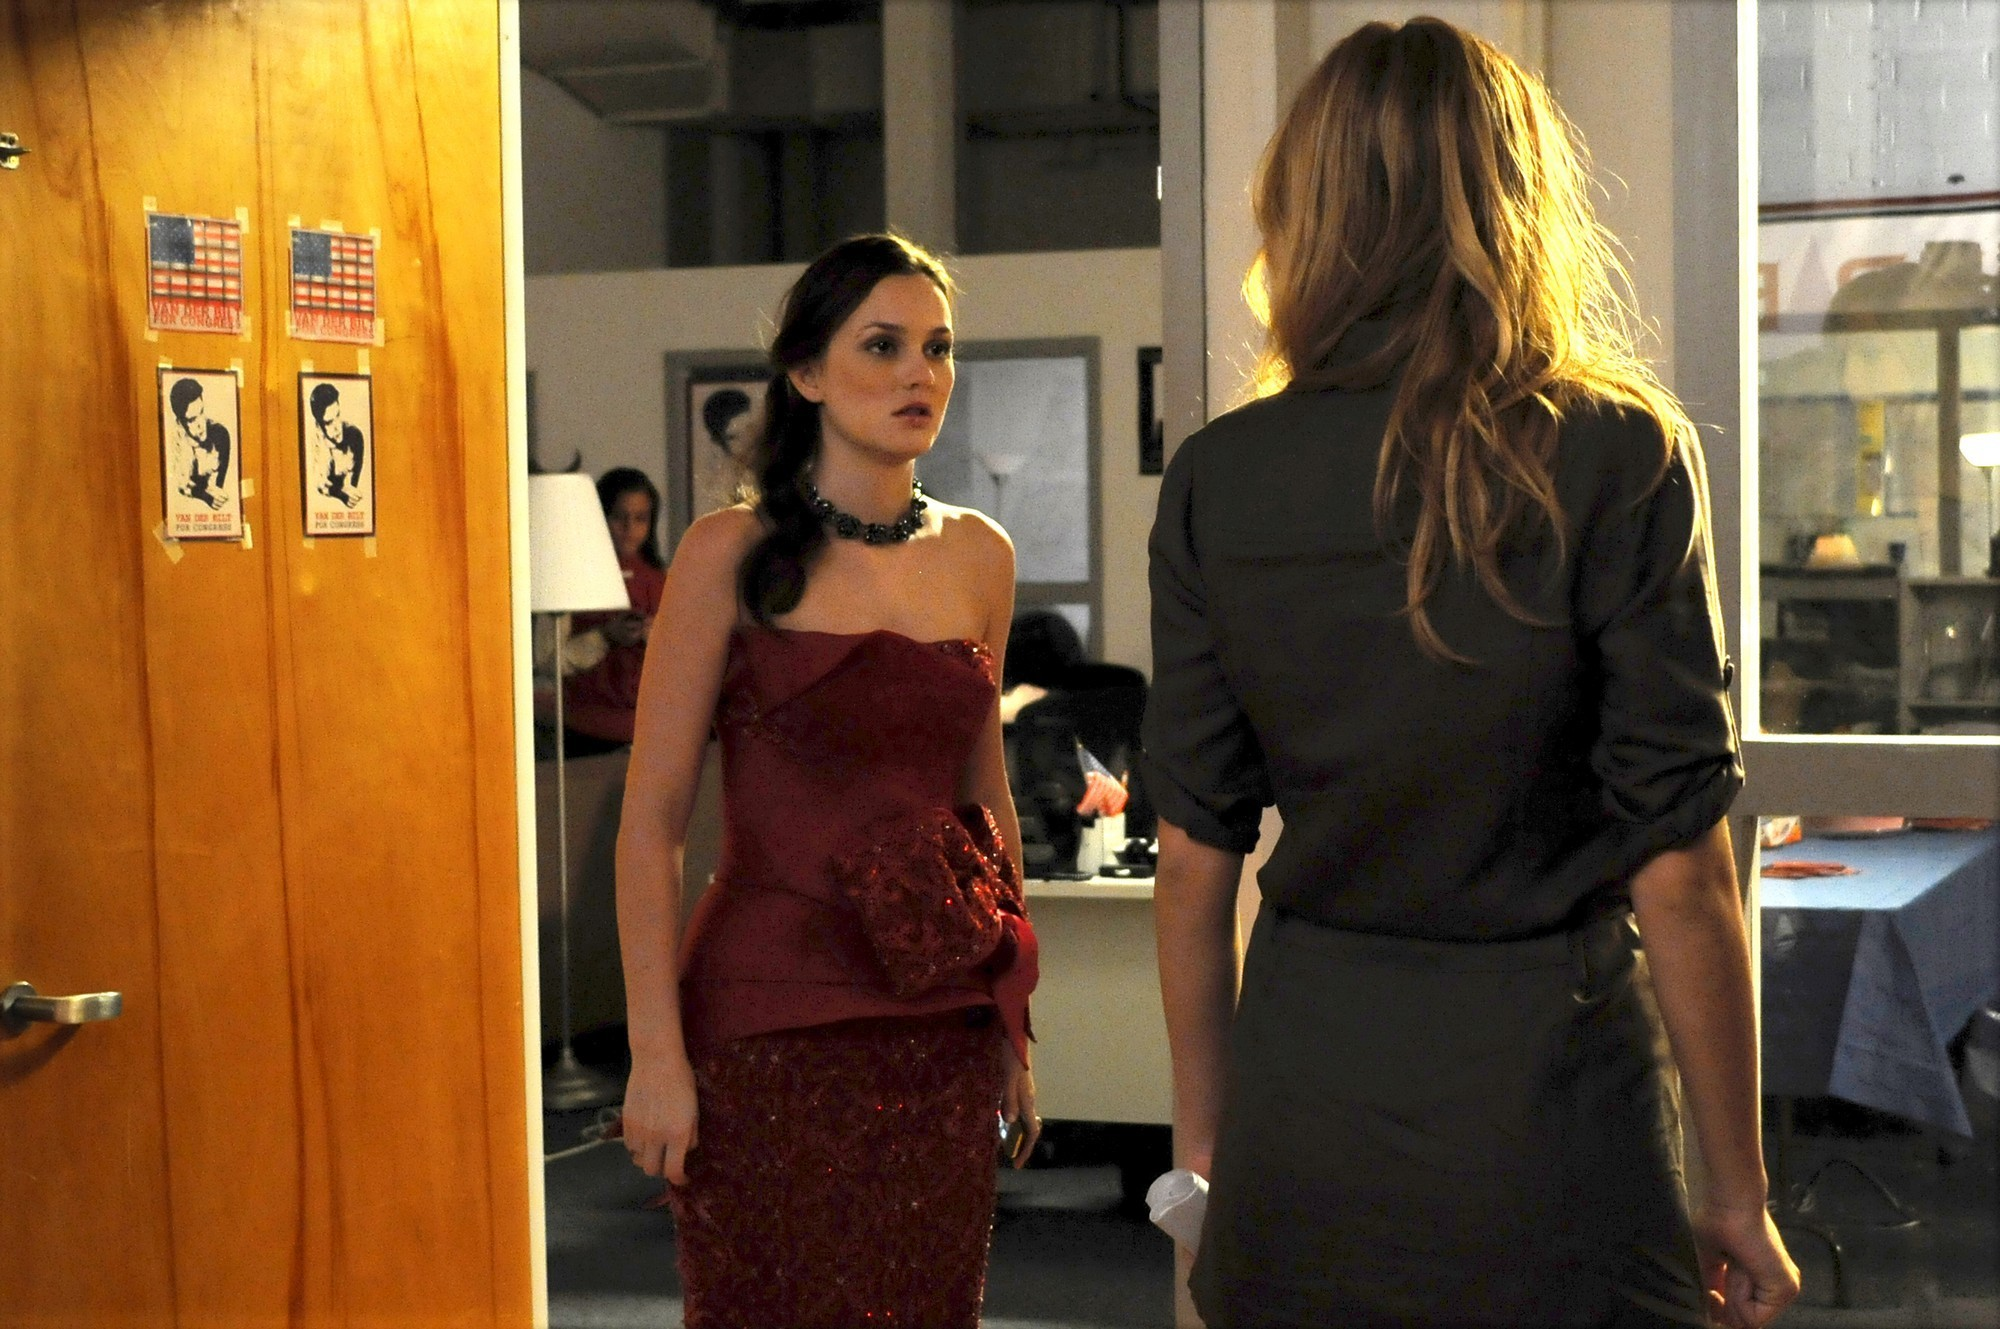 Outfits terza stagione 3-09-They-Shoot-Humphreys-Don-t-They-promo-stills-HQ-blair-waldorf-9073478-2000-1329